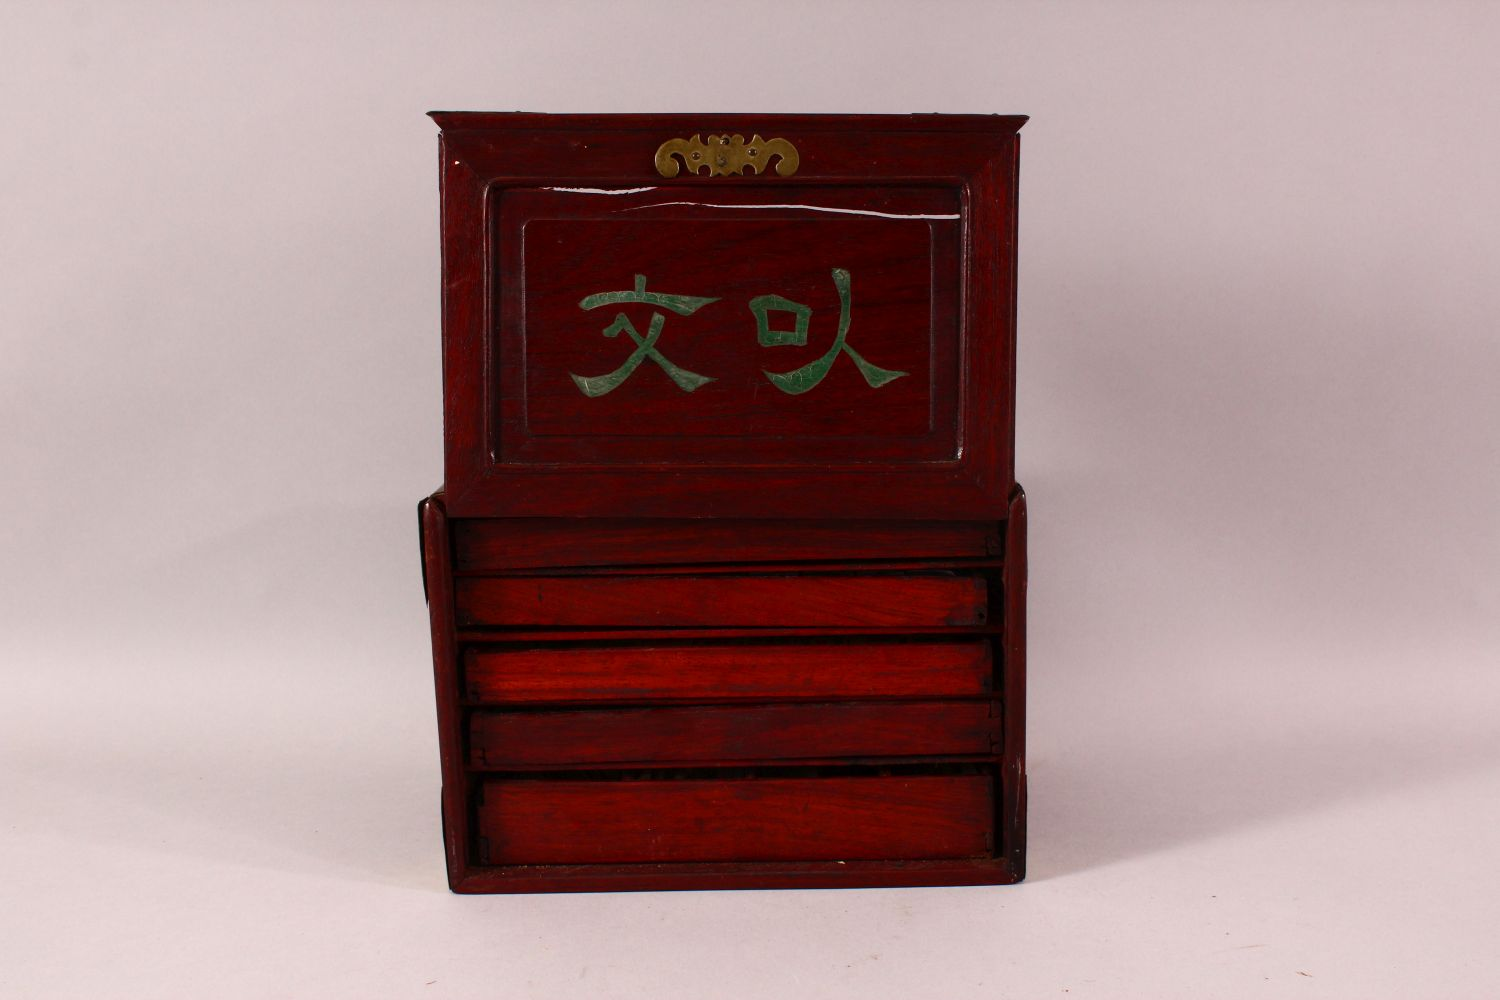 A CHINESE BAMBOO & BONE BOXED MAHJONG SET - comprising 56 drawers full of counters and sticks, - Image 6 of 6